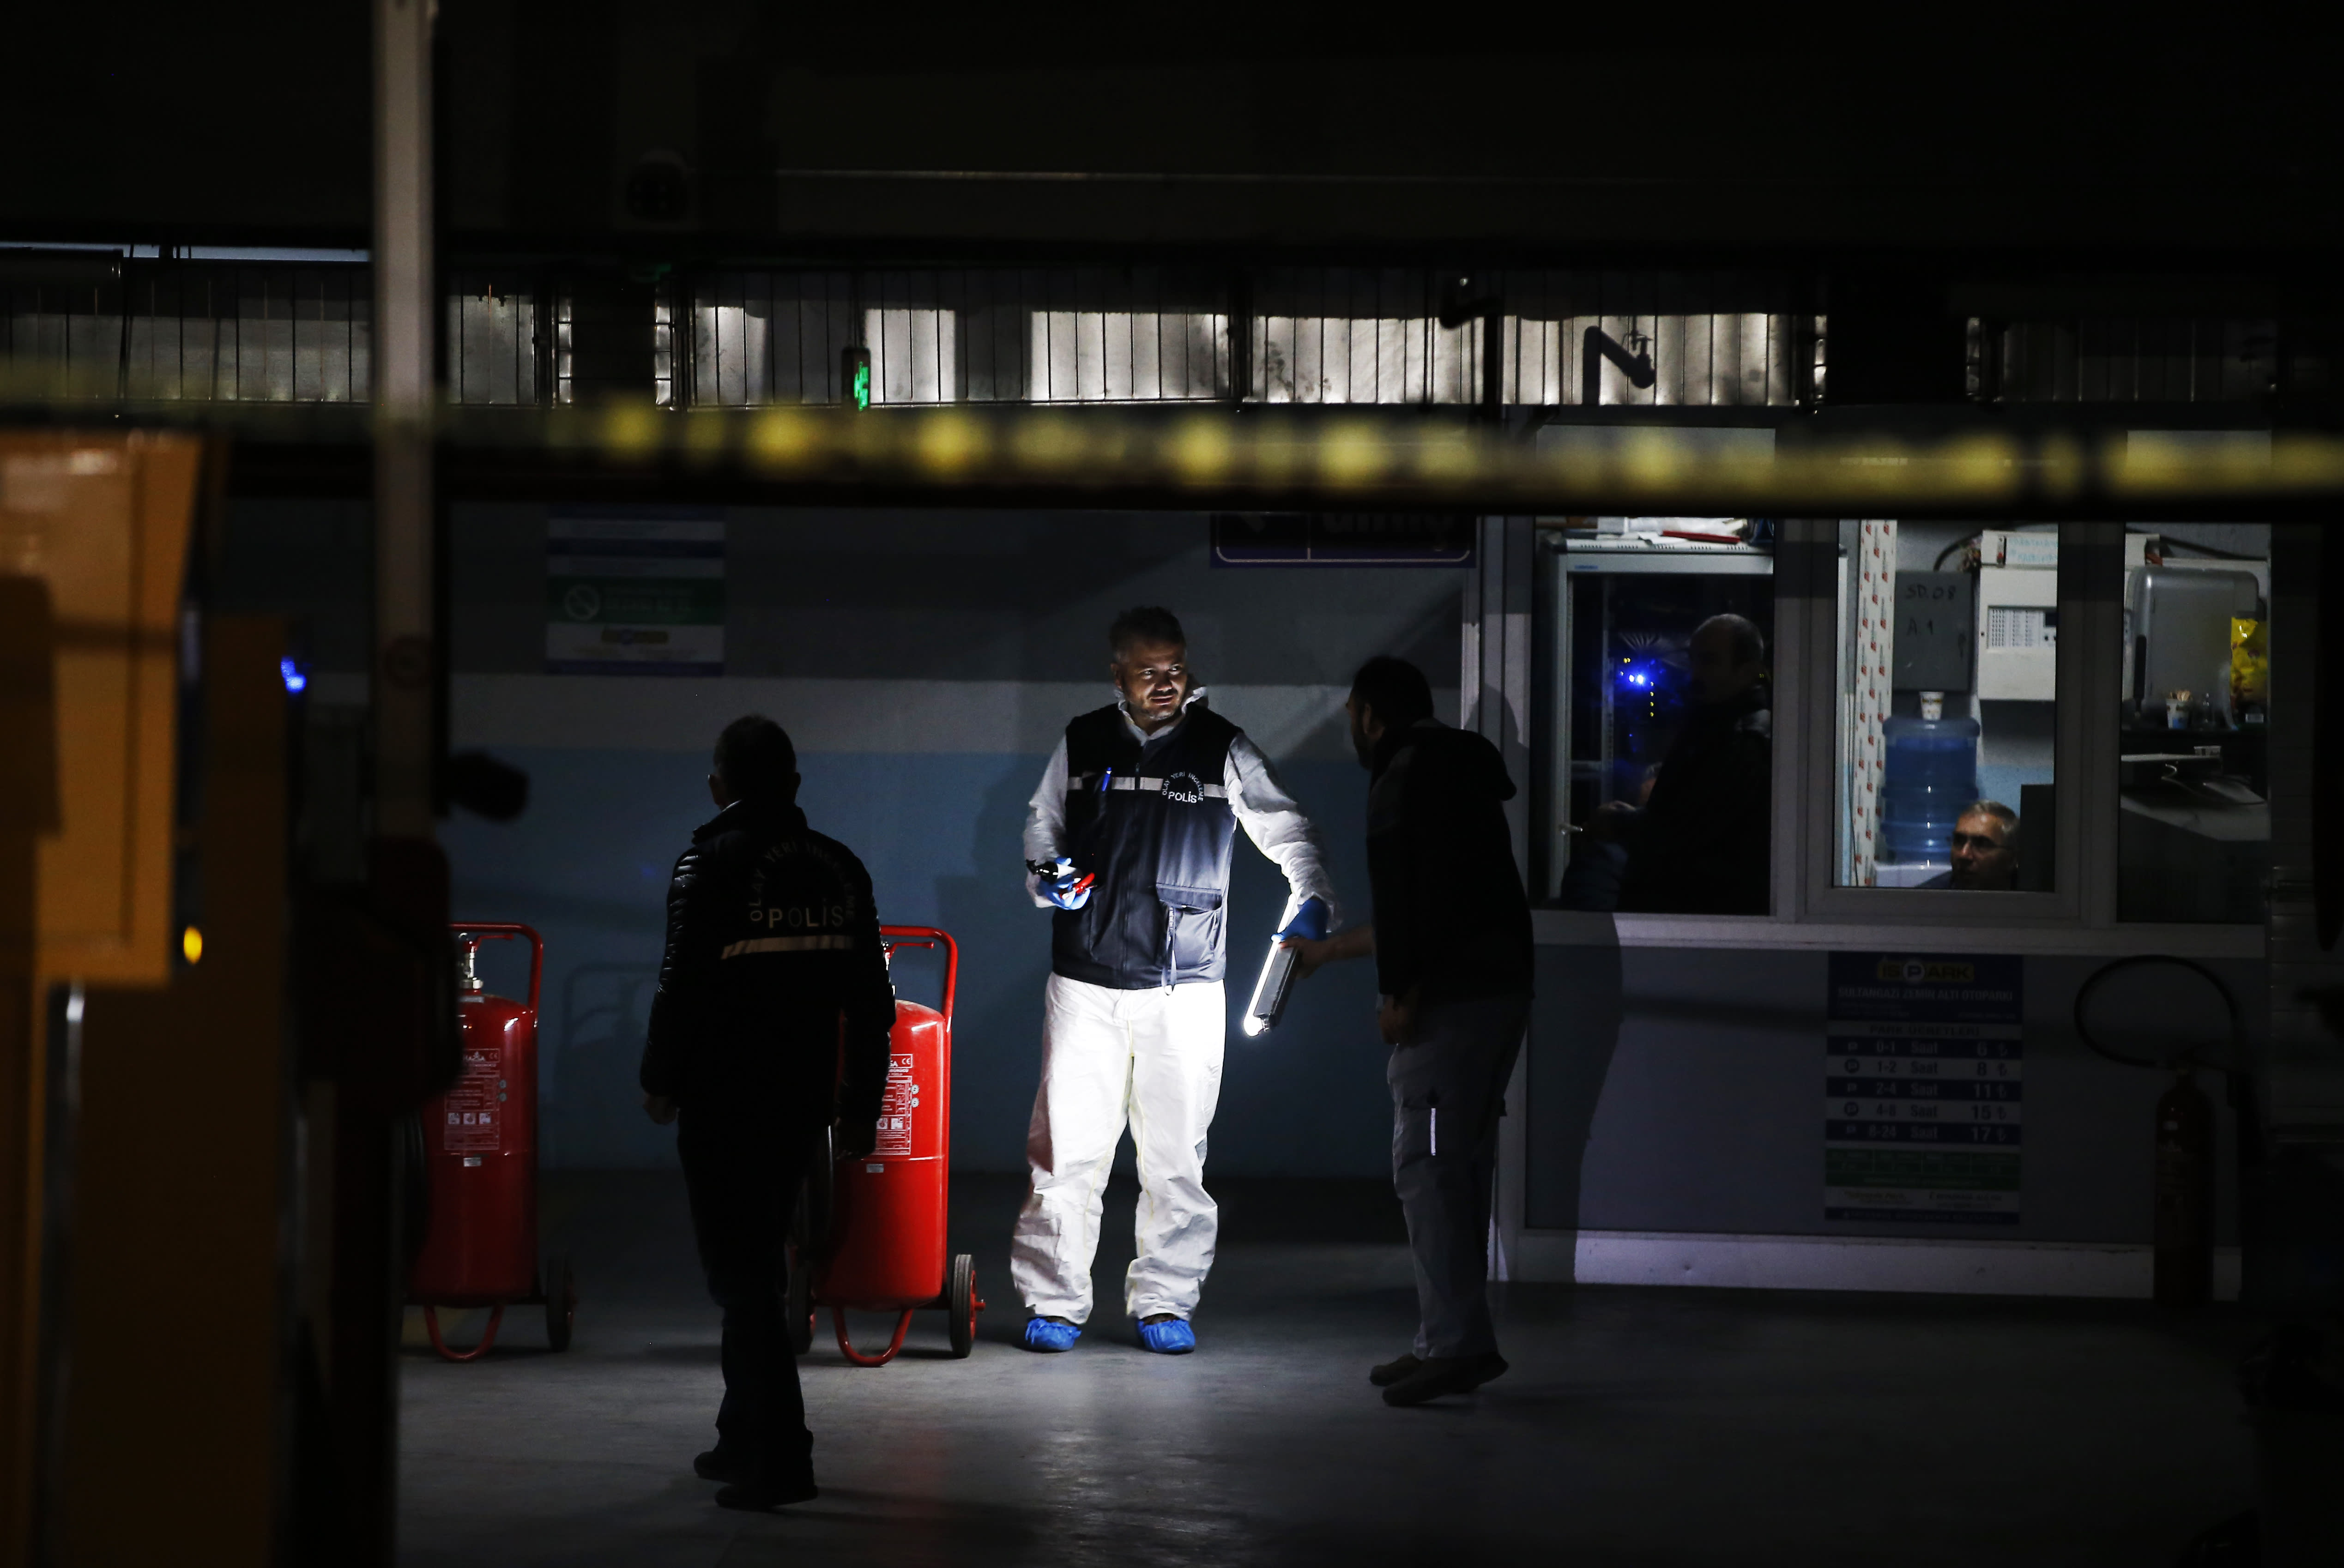 Turkish police crime scene investigators, looking for possible clues into the killing of Saudi journalist Jamal Khashoggi, work in an underground car park, where authorities Monday found a vehicle belonging to the Saudi consulate, in Istanbul, Tuesday, Oct. 23, 2018. Saudi officials murdered Khashoggi in their Istanbul consulate after plotting his death for days, Turkey's President Recep Tayyip Erdogan said Tuesday, contradicting Saudi Arabia's explanation that the writer was accidentally killed. (AP Photo/Emrah Gurel)